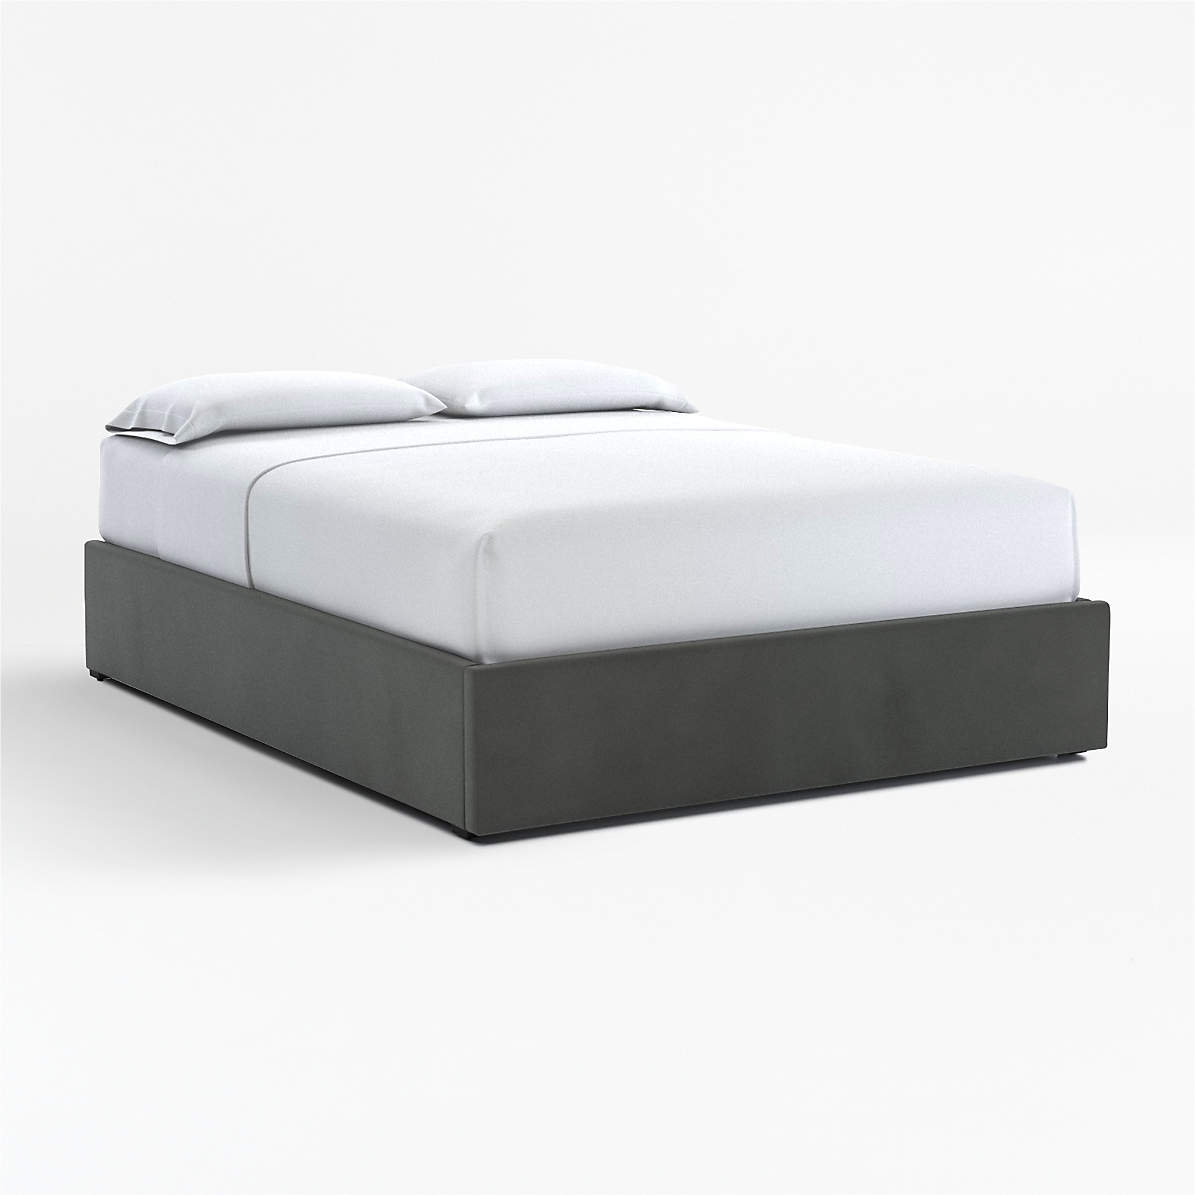 Upholstered Gas Lift Storage Bed Base Crate And Barrel Canada